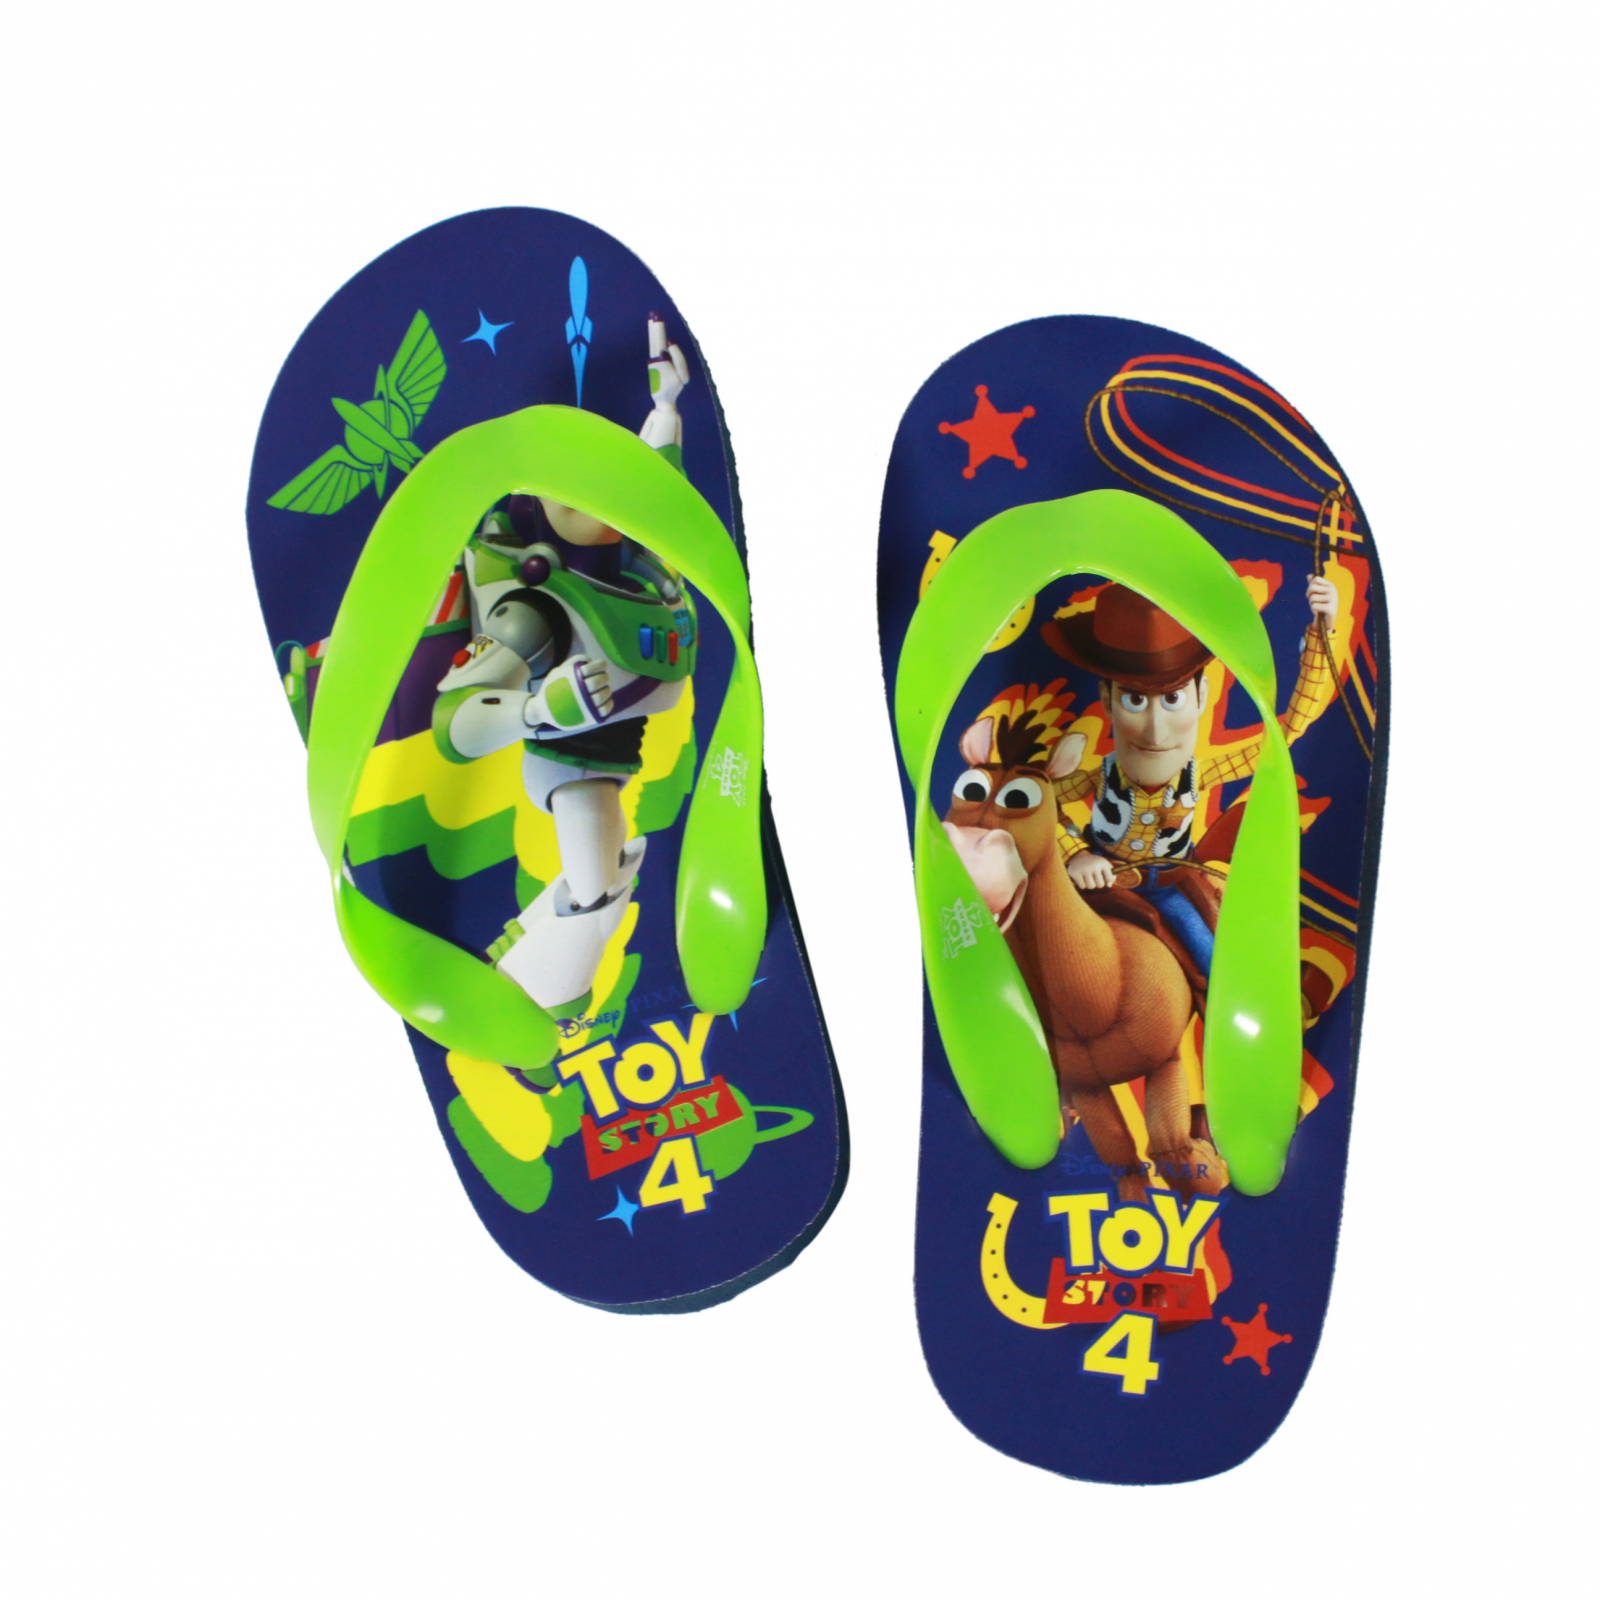 Disney Pixar Toy Story 4 Kids Sandals Green Straps Small 5/6